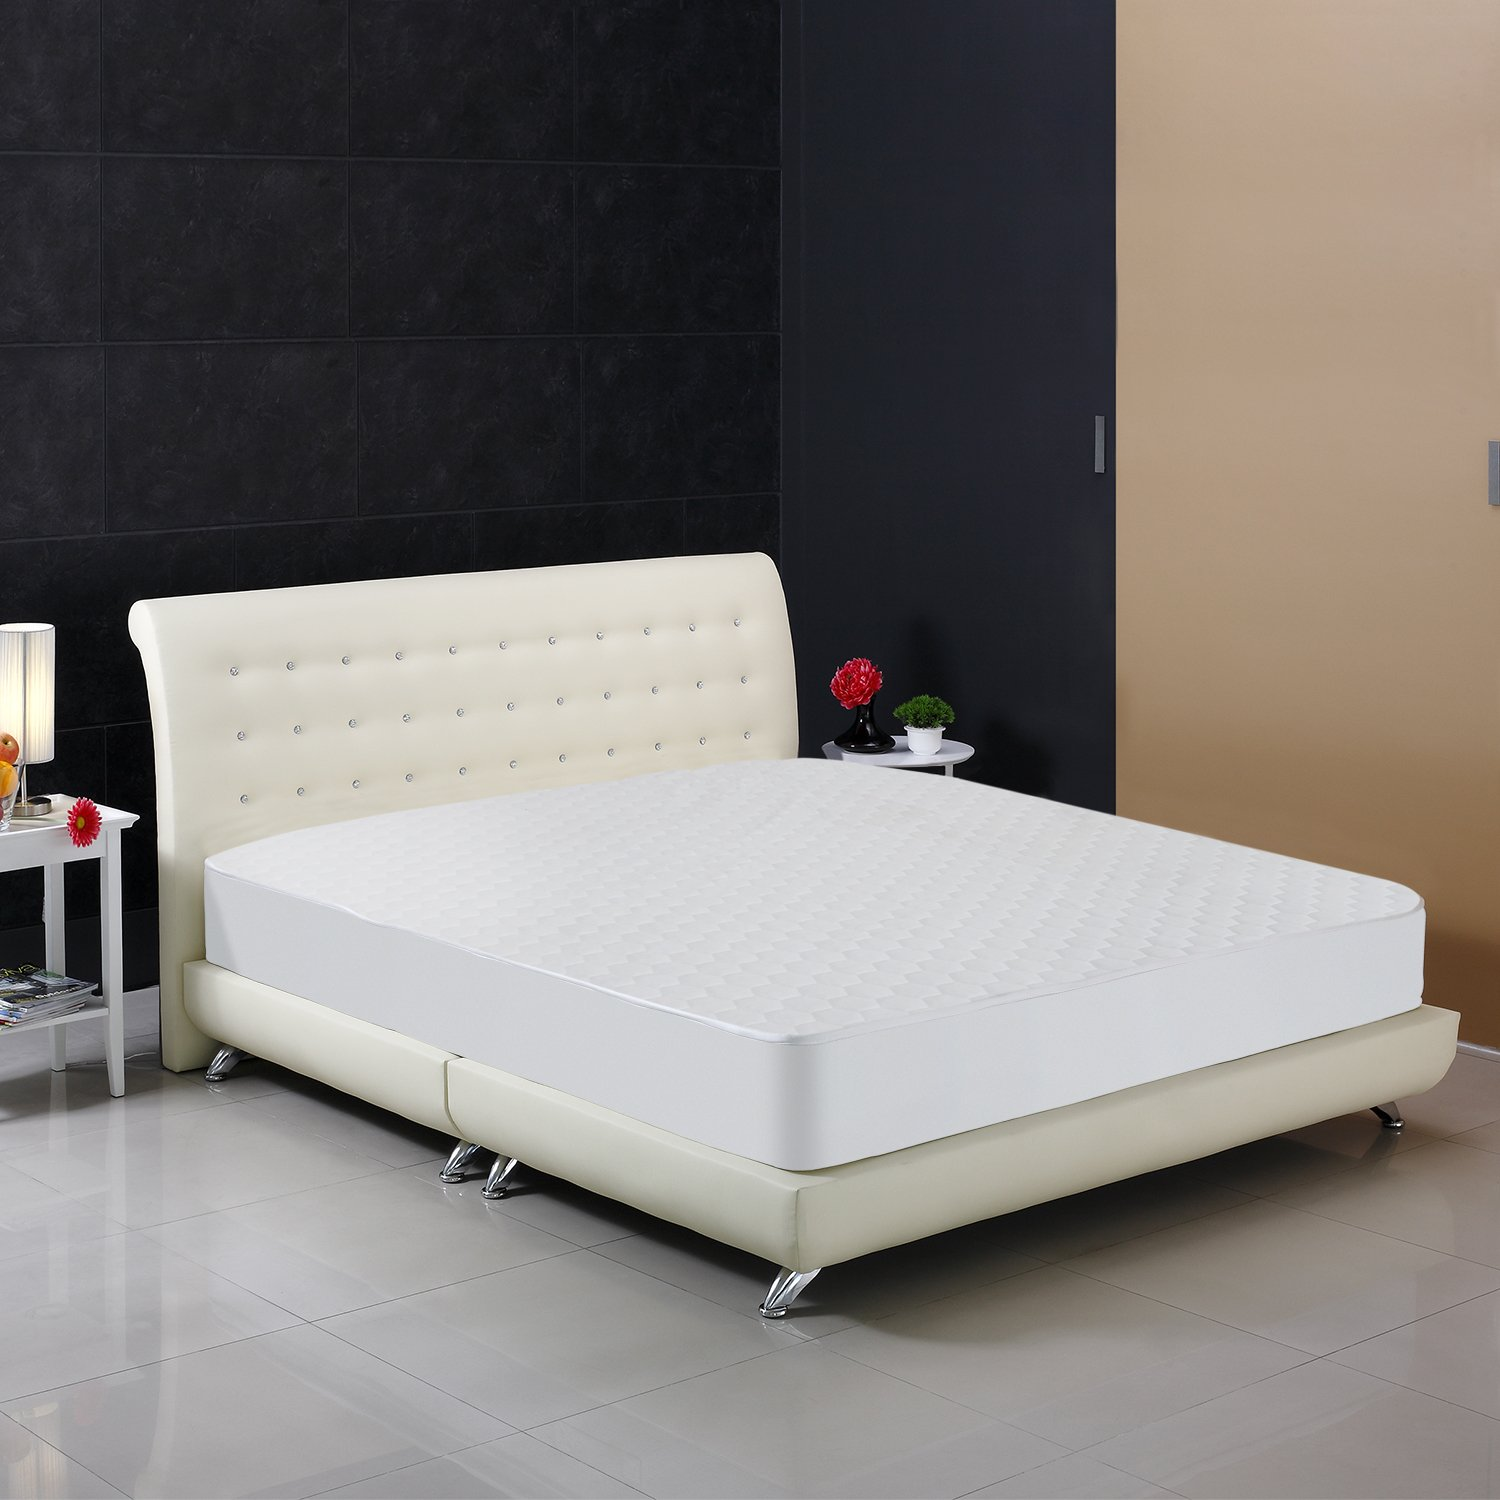 Mattress Protector Hypoallergenic Waterproof Fitted Jacquard Mattress Cover Lot